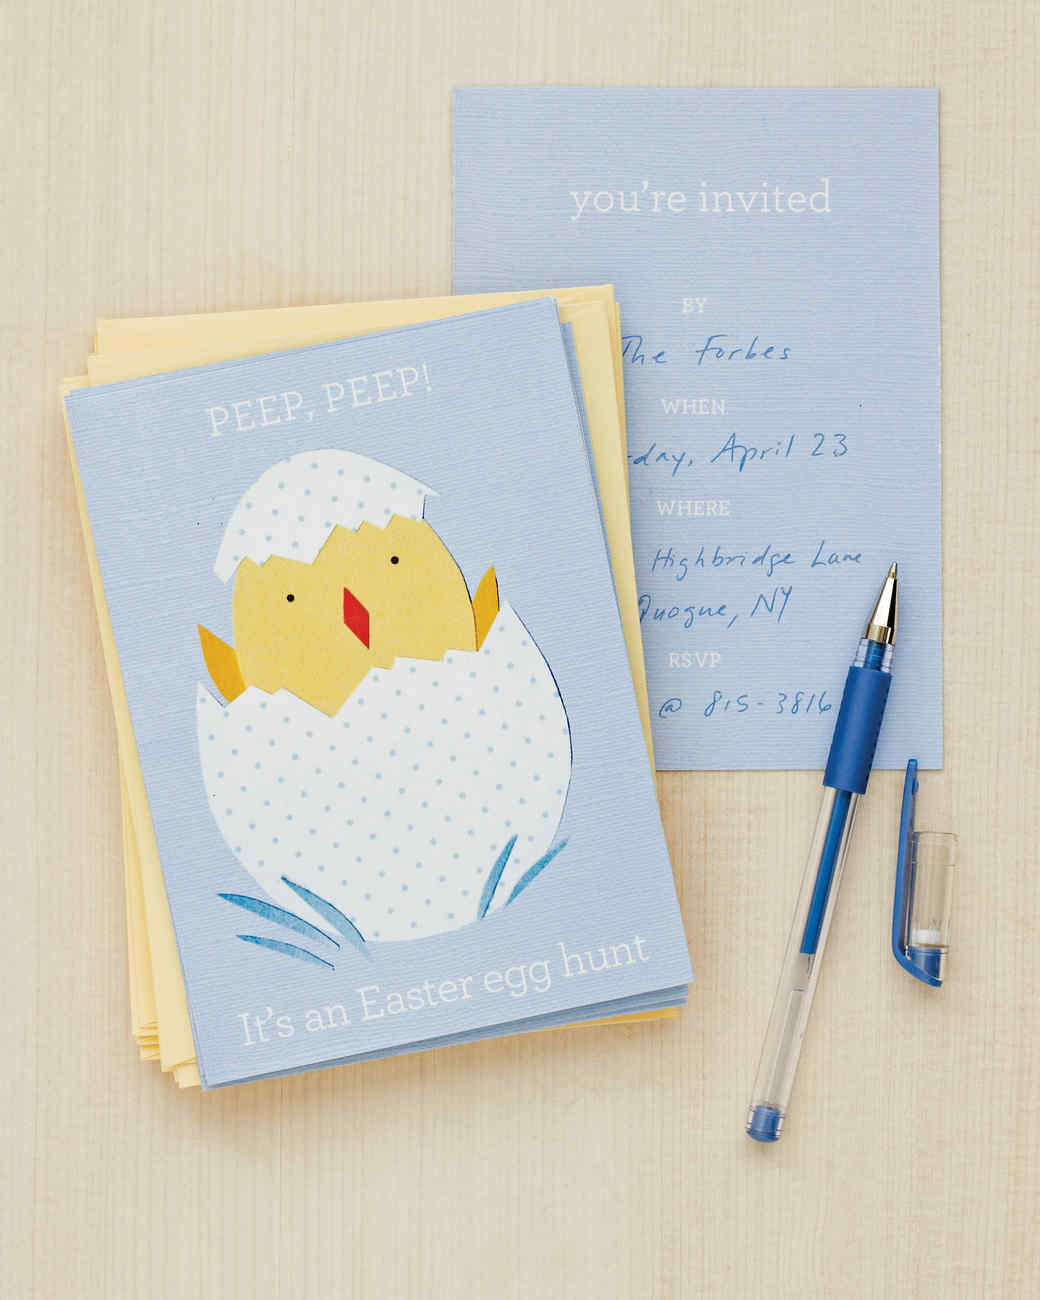 Clip art and templates. Cards clipart easter